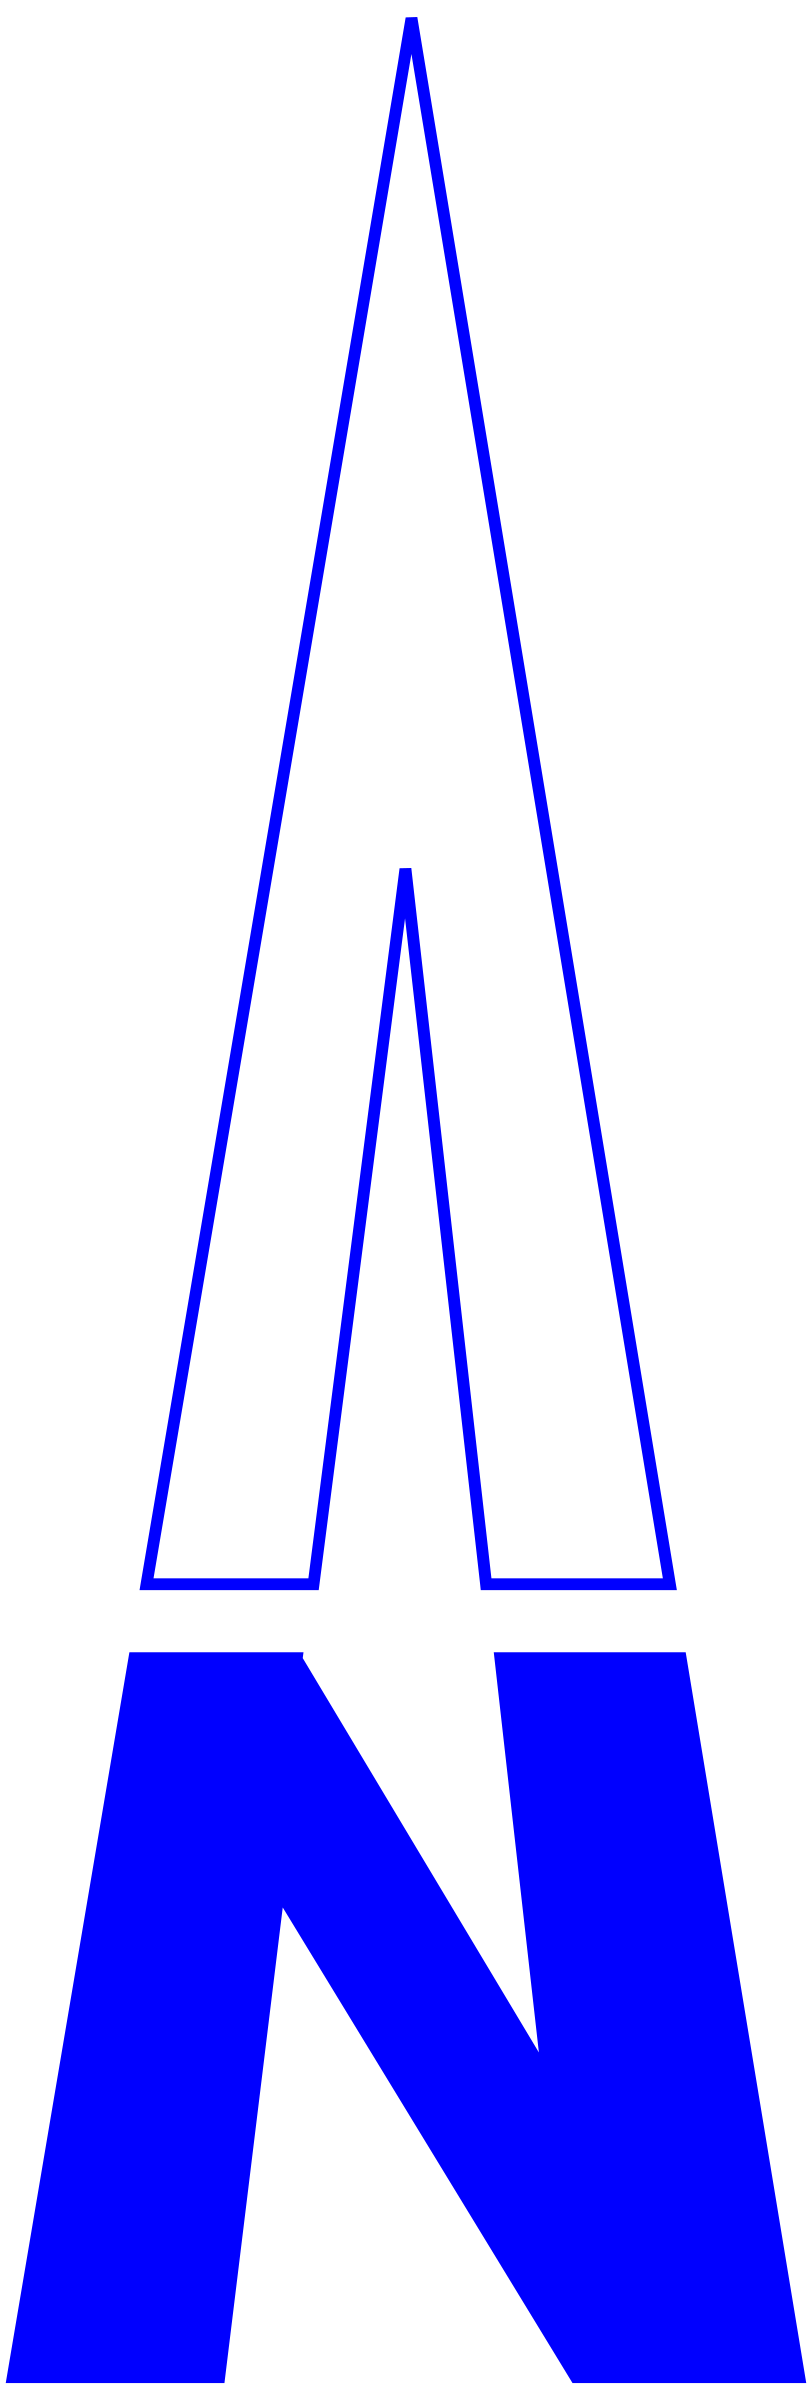 north arrow orienteering by morits